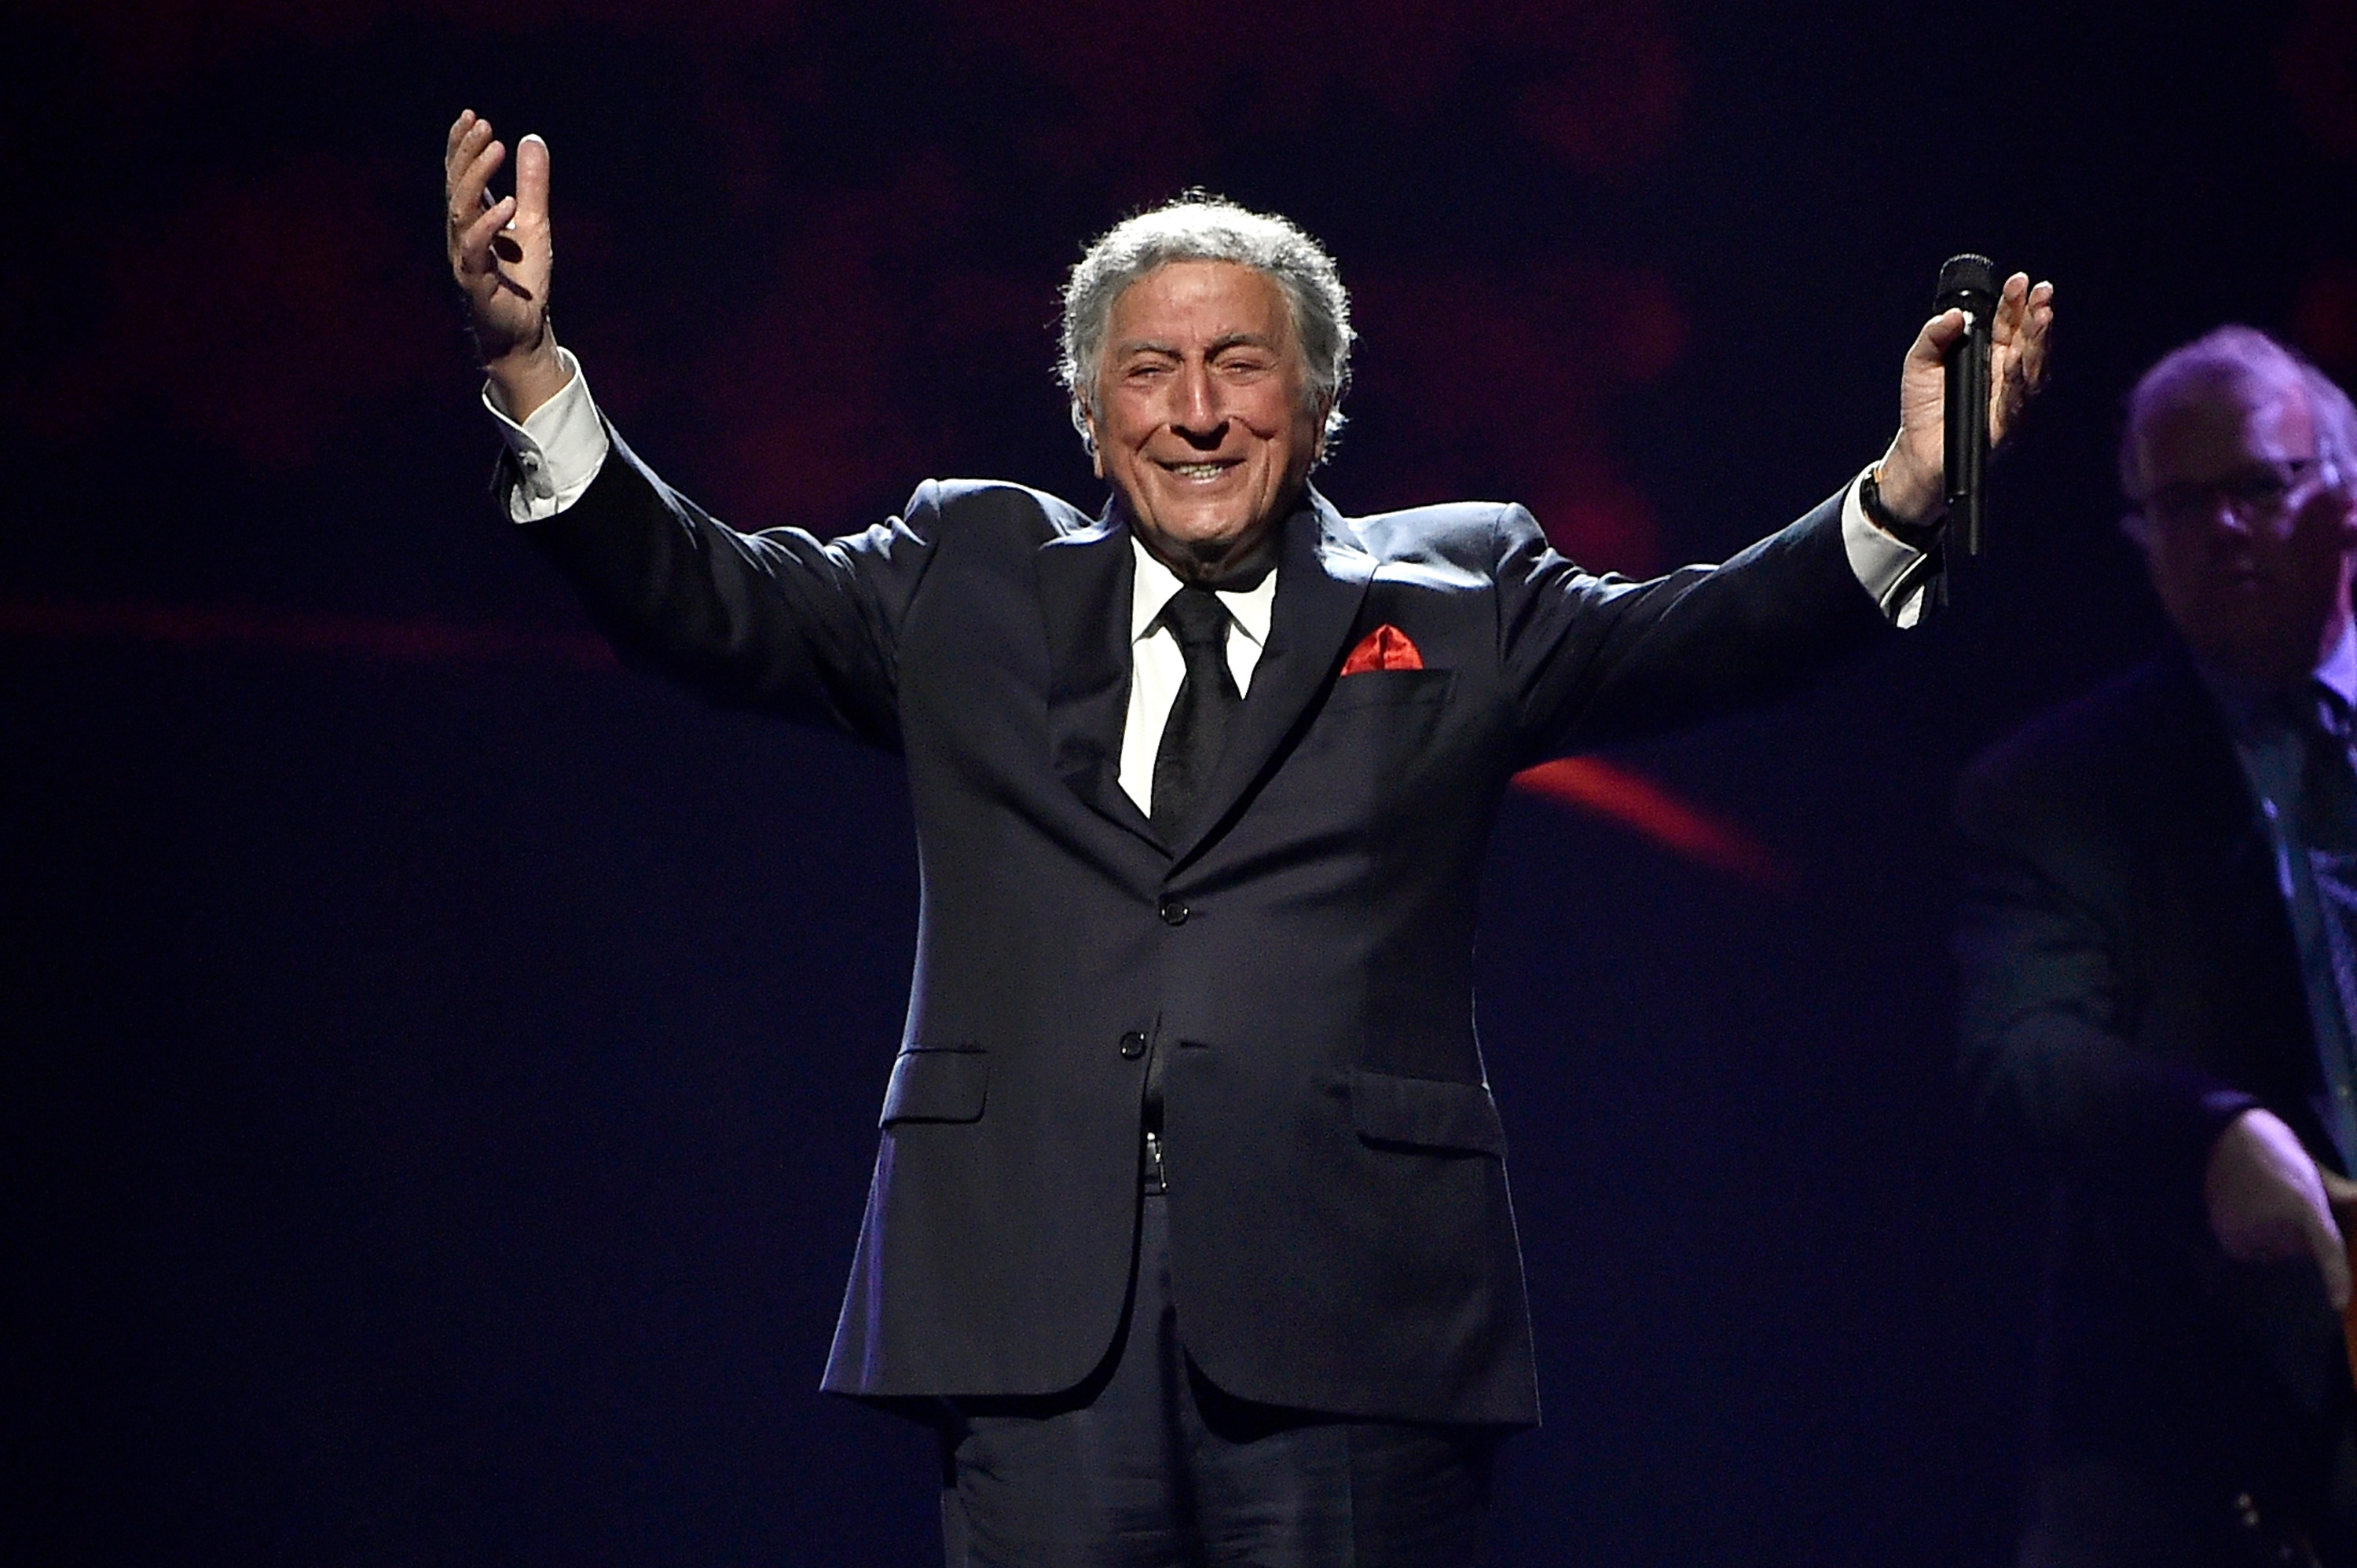 Tony Bennett will perform in the 10th annual Ronald McDonald House Charity Holiday Concert. (Getty Images)